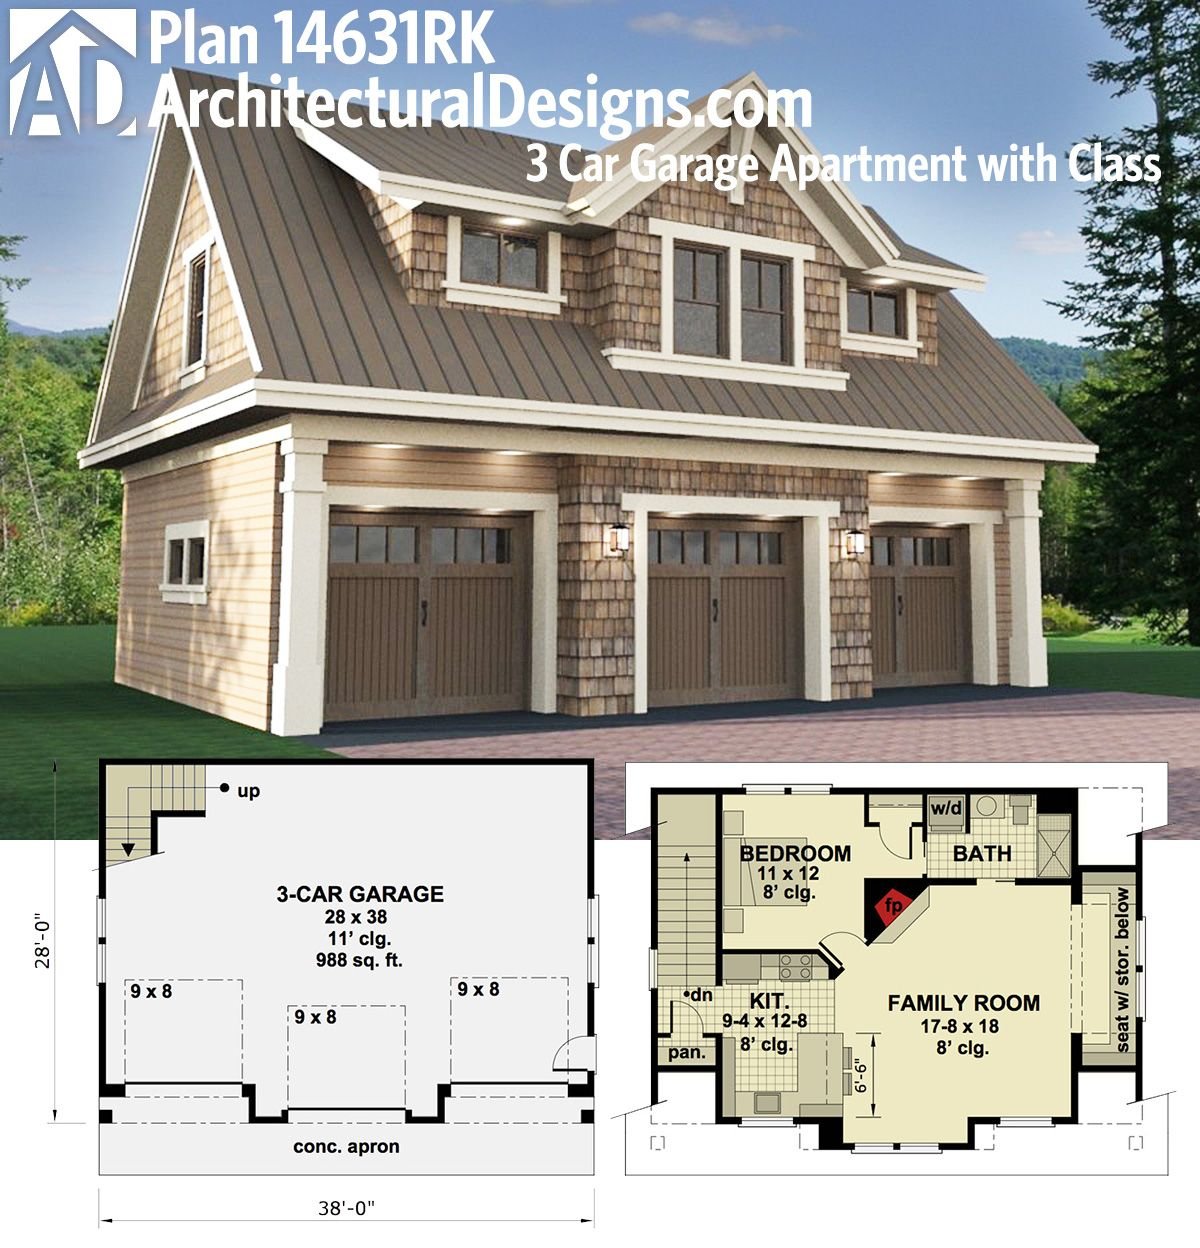 Plan 14631rk 3 car garage apartment with class carriage for 3 car garage square footage